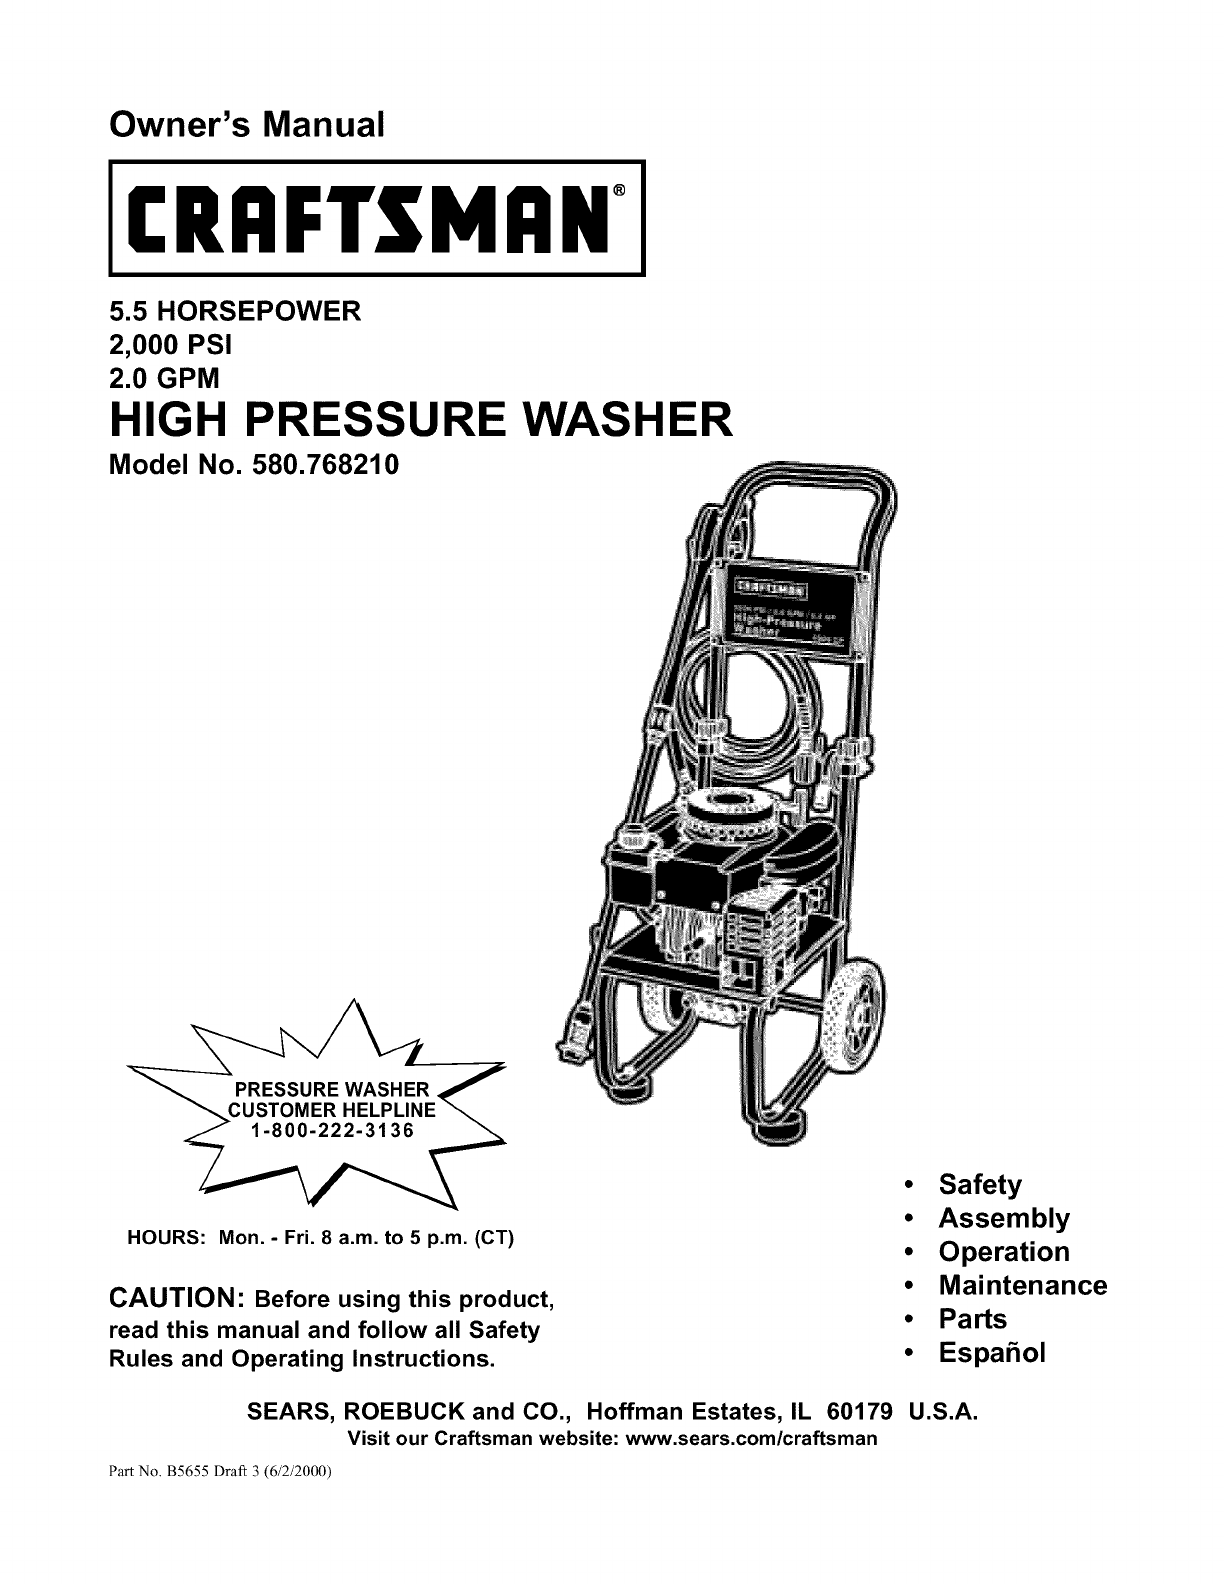 Craftsman 580768210 User Manual Pressure Washer Manuals And Guides Wiring Diagram For L0208266